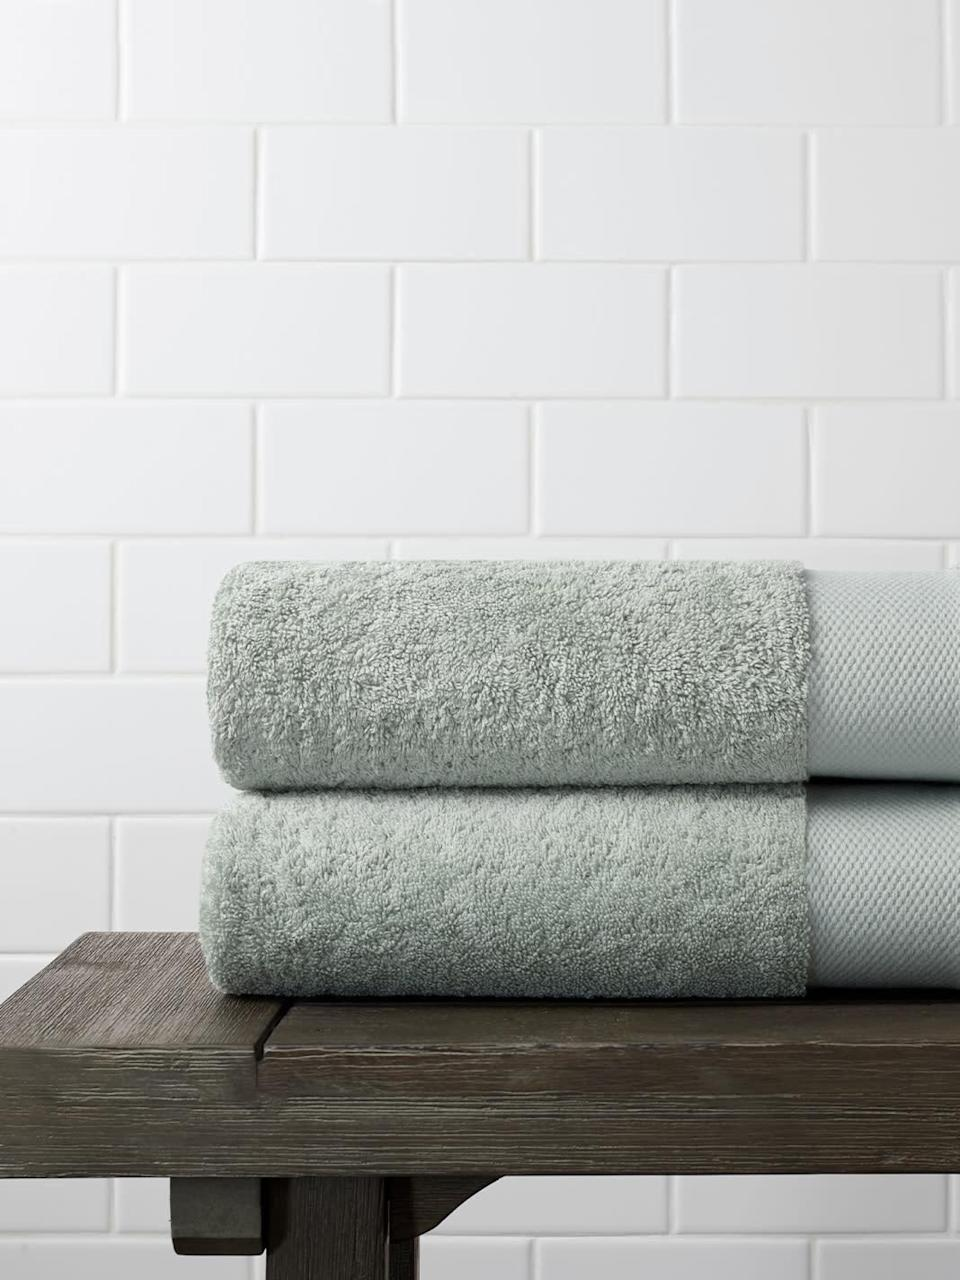 "<h2><h2>Plush Bath Towel</h2></h2><br><br><strong>Boll And Branch</strong> Plush Bath Towel, $, available at <a href=""https://go.skimresources.com/?id=30283X879131&url=https%3A%2F%2Fwww.bollandbranch.com%2Fproducts%2Fplush-bath-towel%3Fvariant%3Deucalyptus"" rel=""nofollow noopener"" target=""_blank"" data-ylk=""slk:Boll And Branch"" class=""link rapid-noclick-resp"">Boll And Branch</a>"